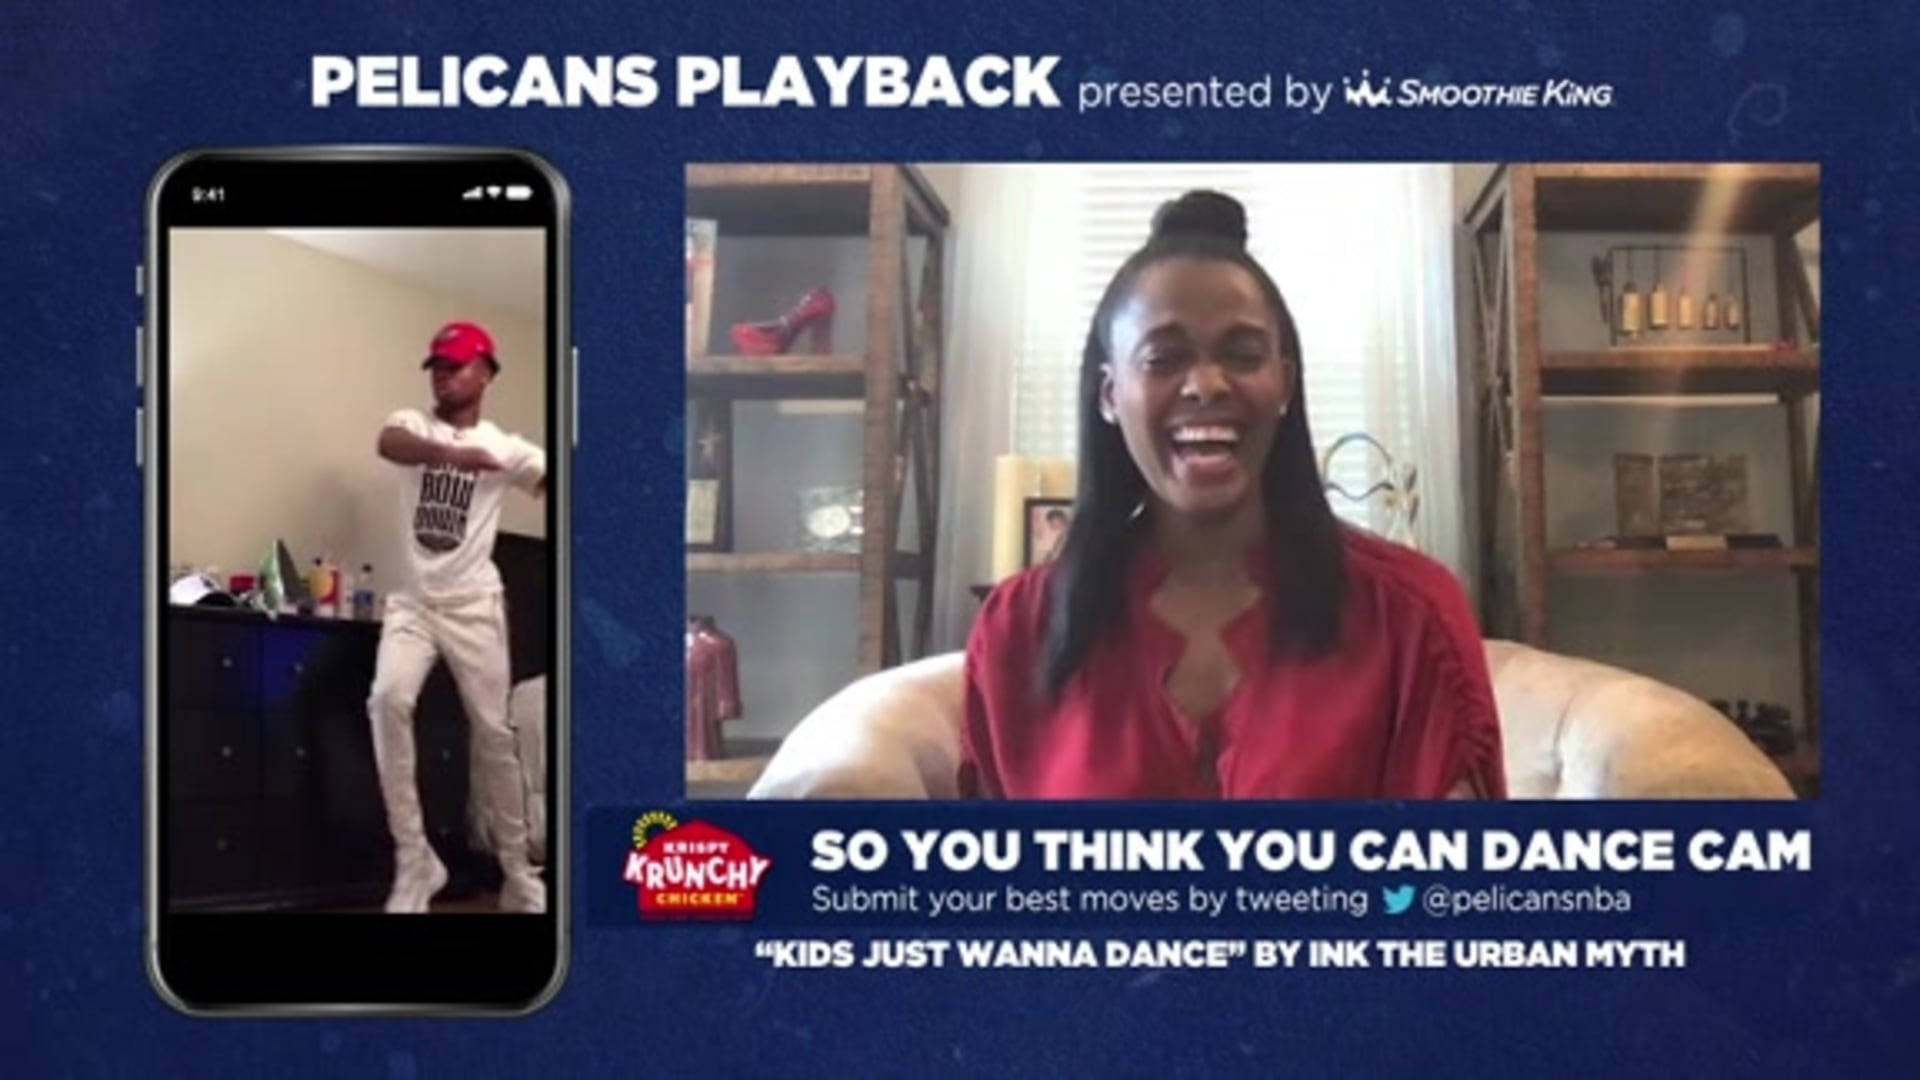 Pelicans Playback: Swin Cash judges Dance Cam